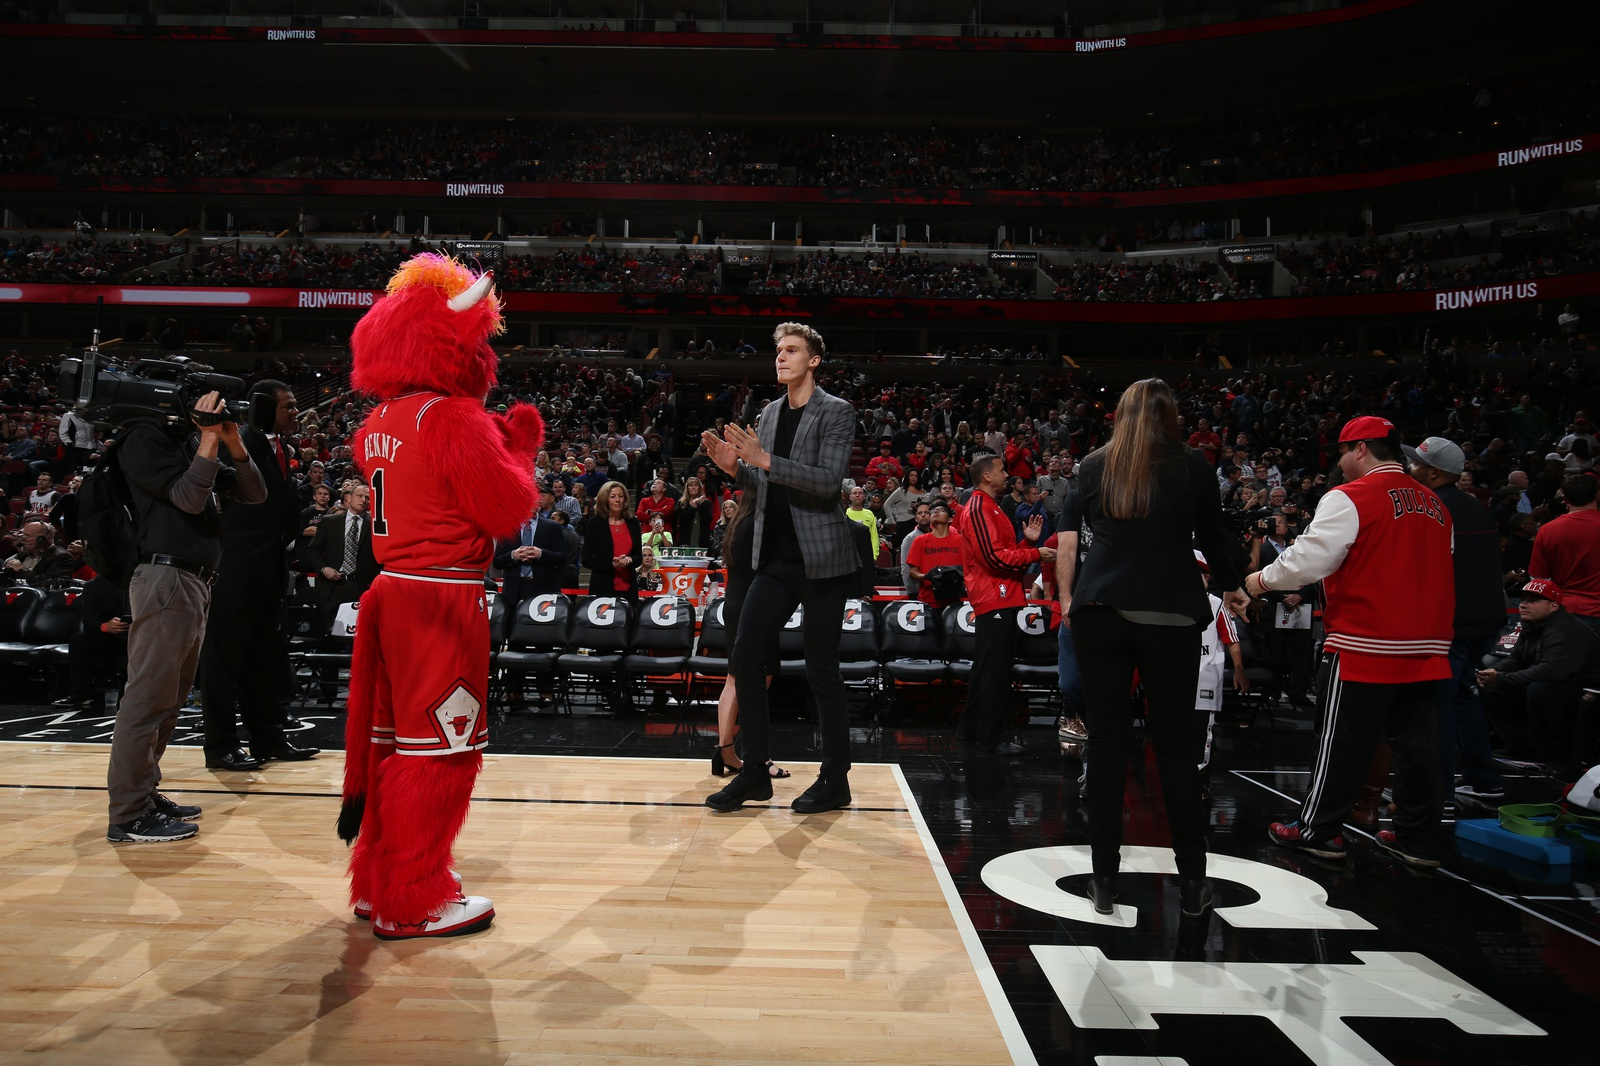 Lauri Markkanen #24 of the Chicago Bulls is introduced during a game against the Detroit Pistons on October 20, 2018 at United Center in Chicago, Illinois.